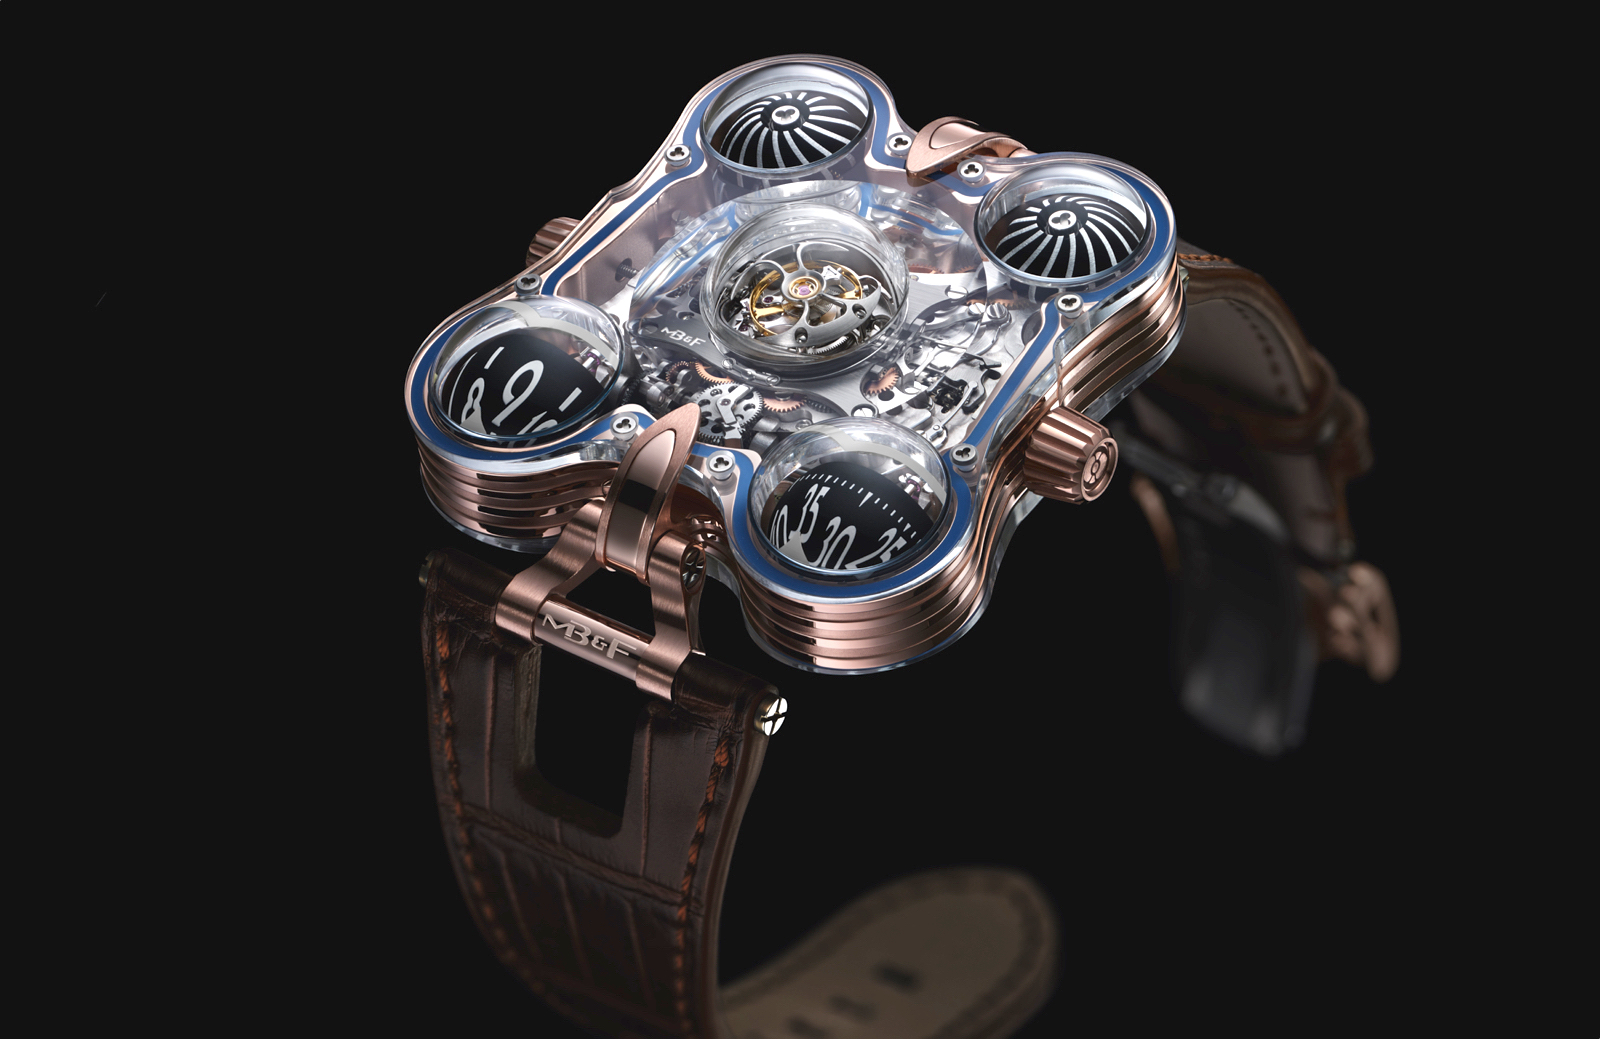 MBF-Horological-Machine-6-Sapphire-Version